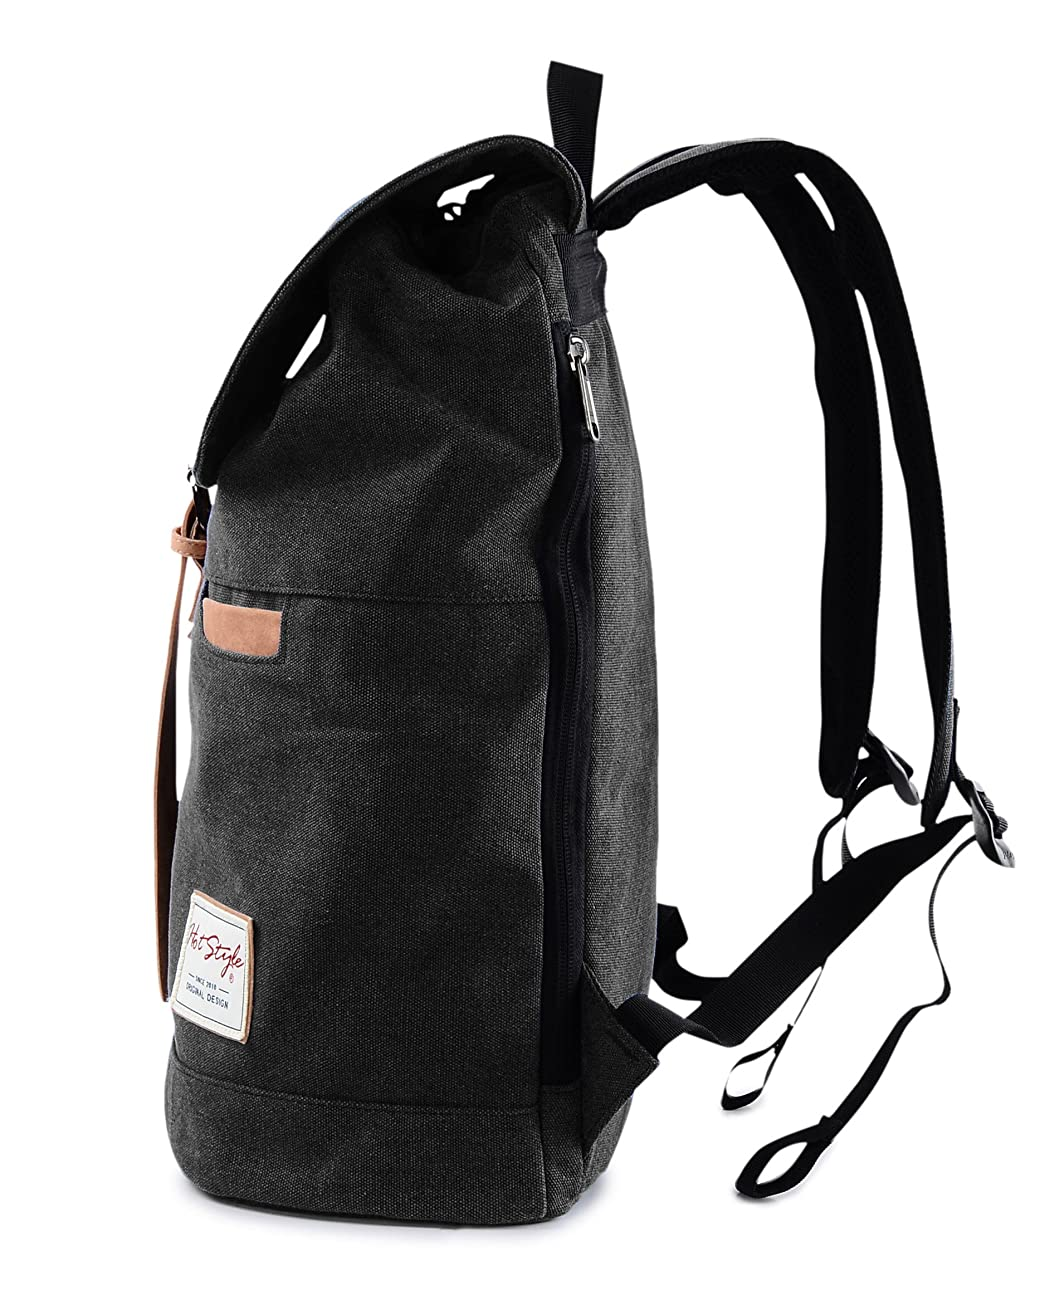 Vintage Canvas Backpack - HotStyle Waterpoof Travel Rucksack Fits 15.6 inch Laptop - Black 2